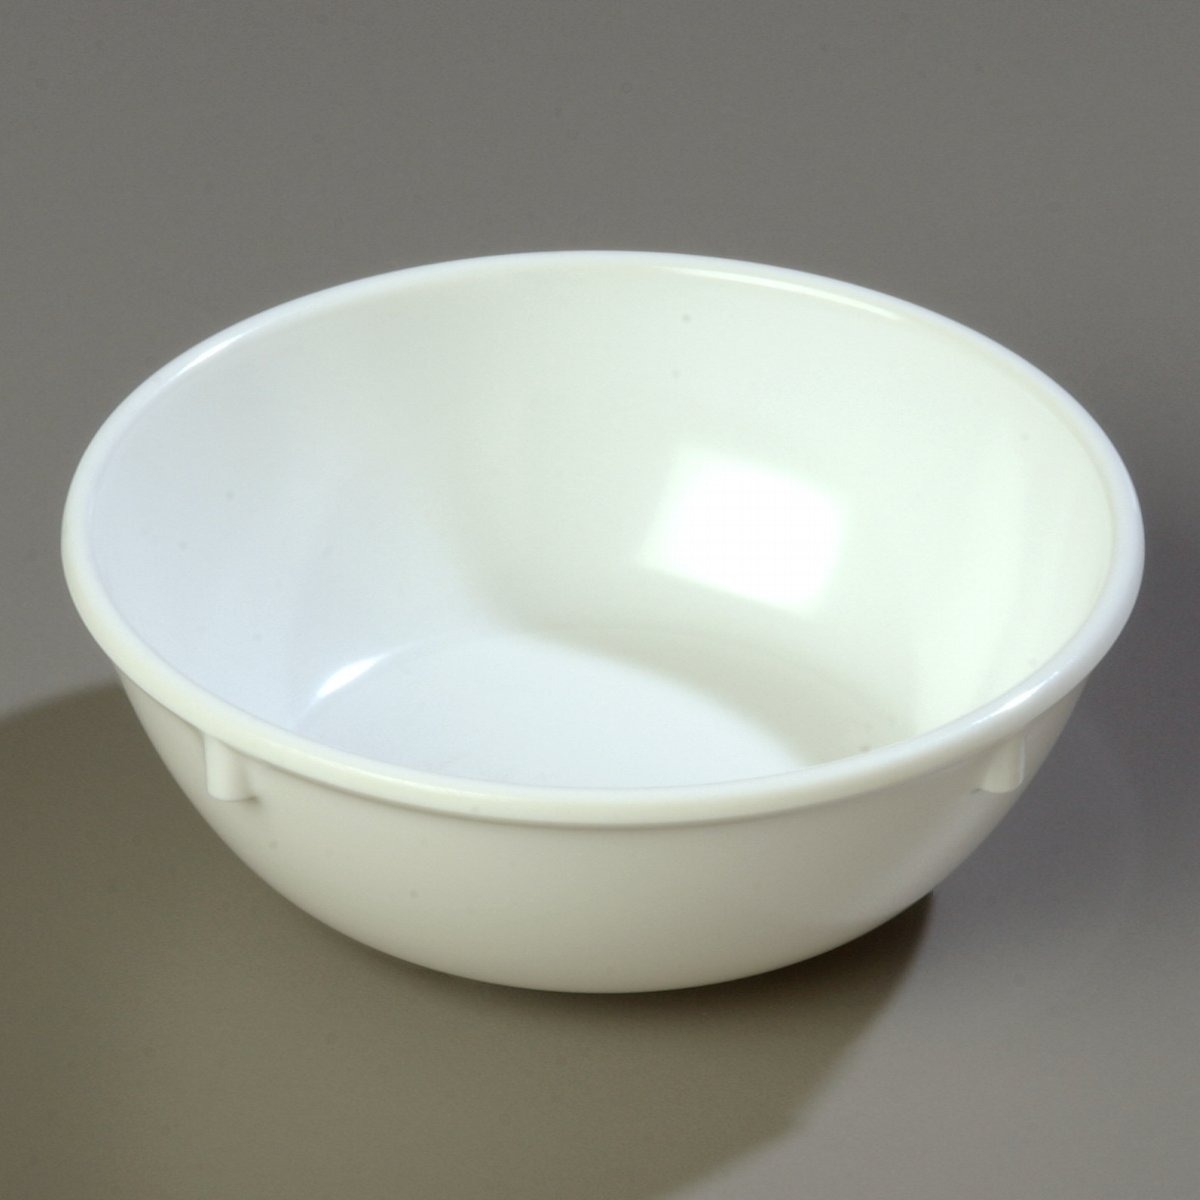 Amazon Com Carlisle 4352802 Dallas Ware Melamine Nappie Bowl 10 Oz Capacity 4 96 X 1 81 White Case Of 48 Industrial Scientific